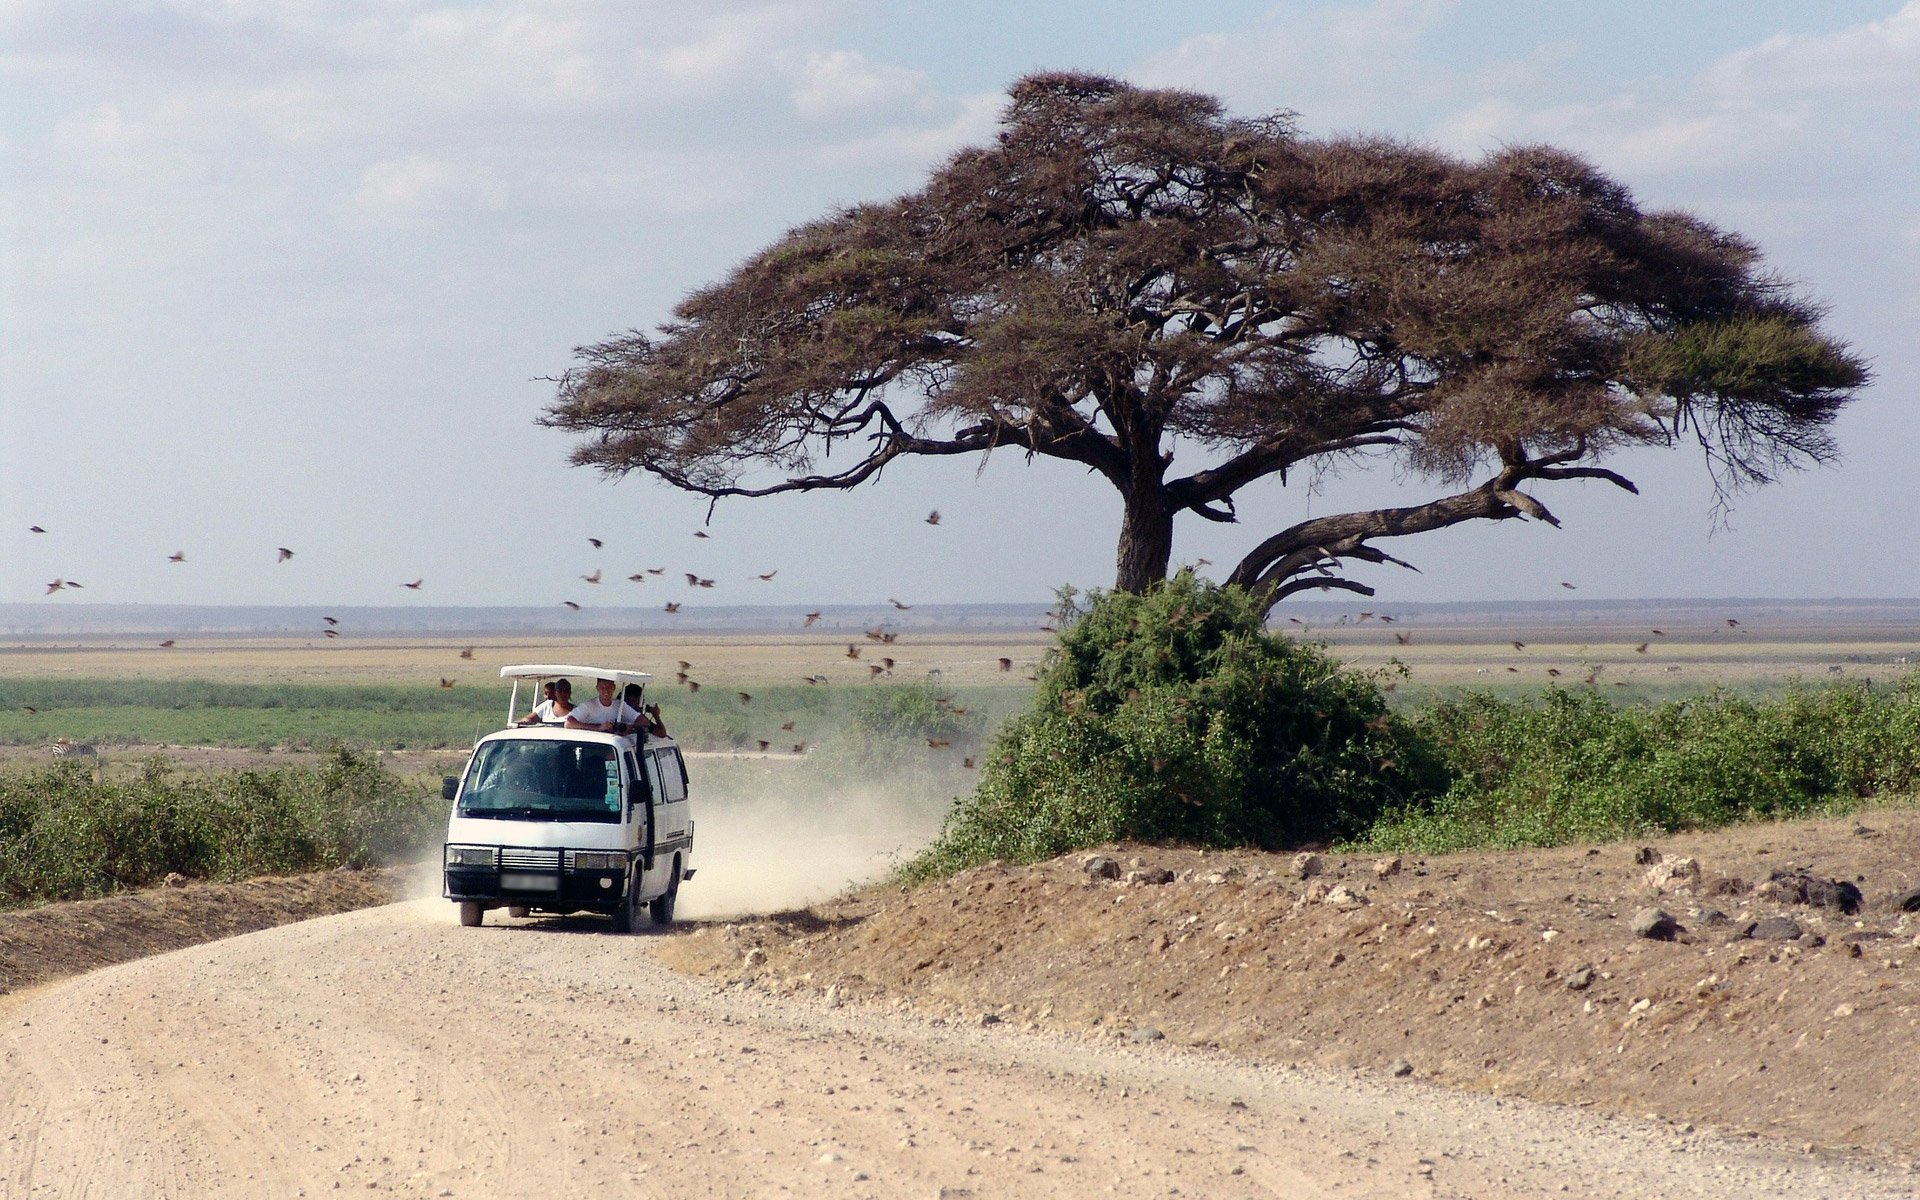 Carsickness is not something you can just wish away. I have compiled a list of effective tips to help you cope as you travel through Kenya.